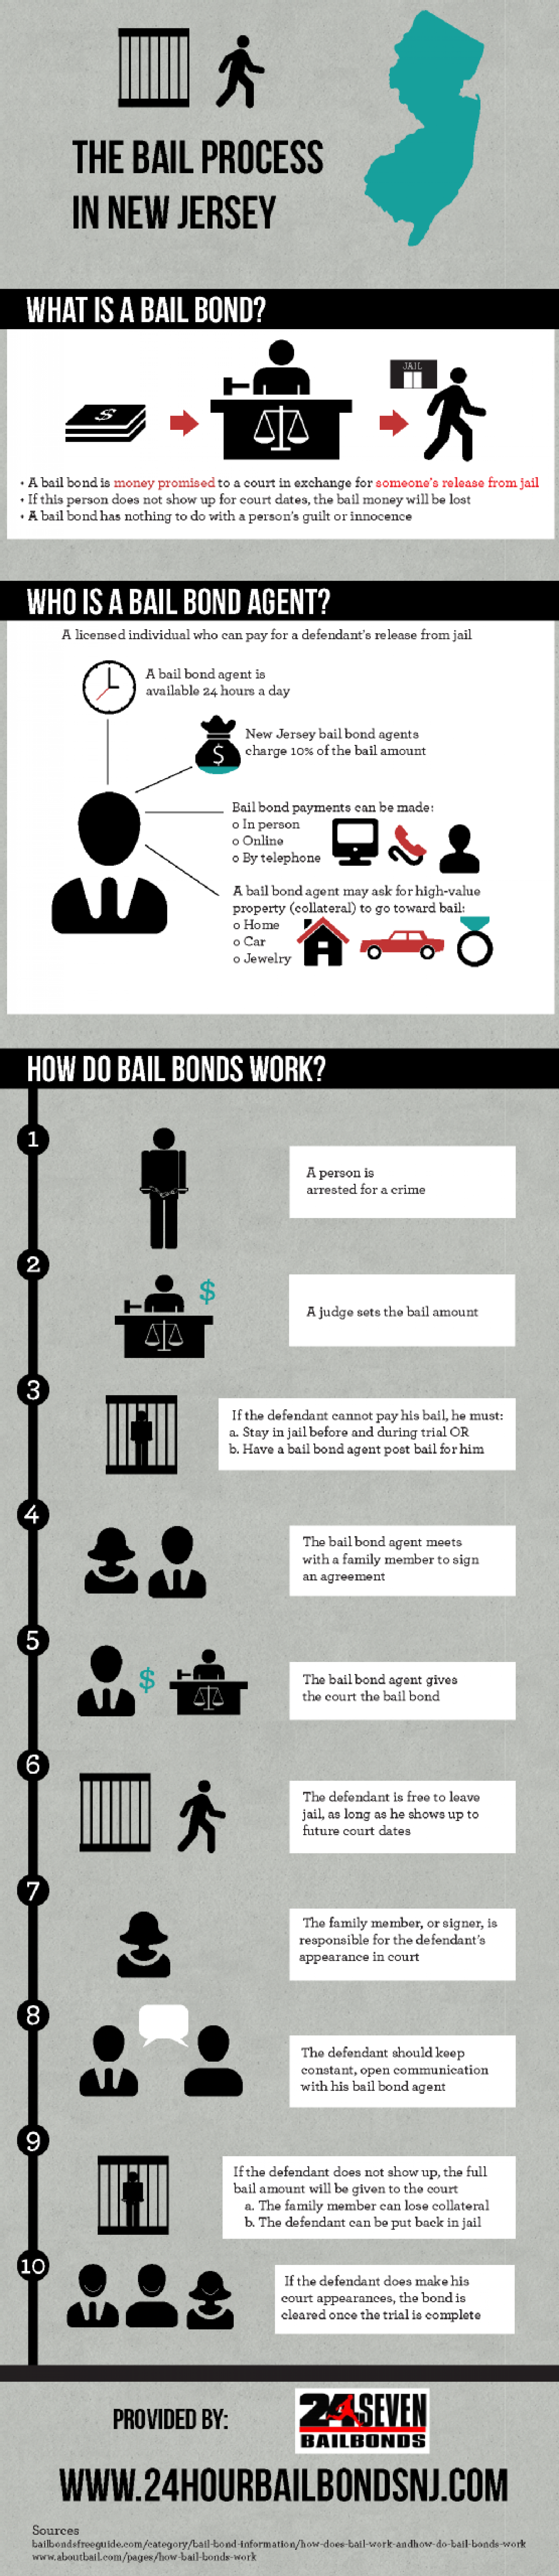 The Bail Process in New Jersey Infographic